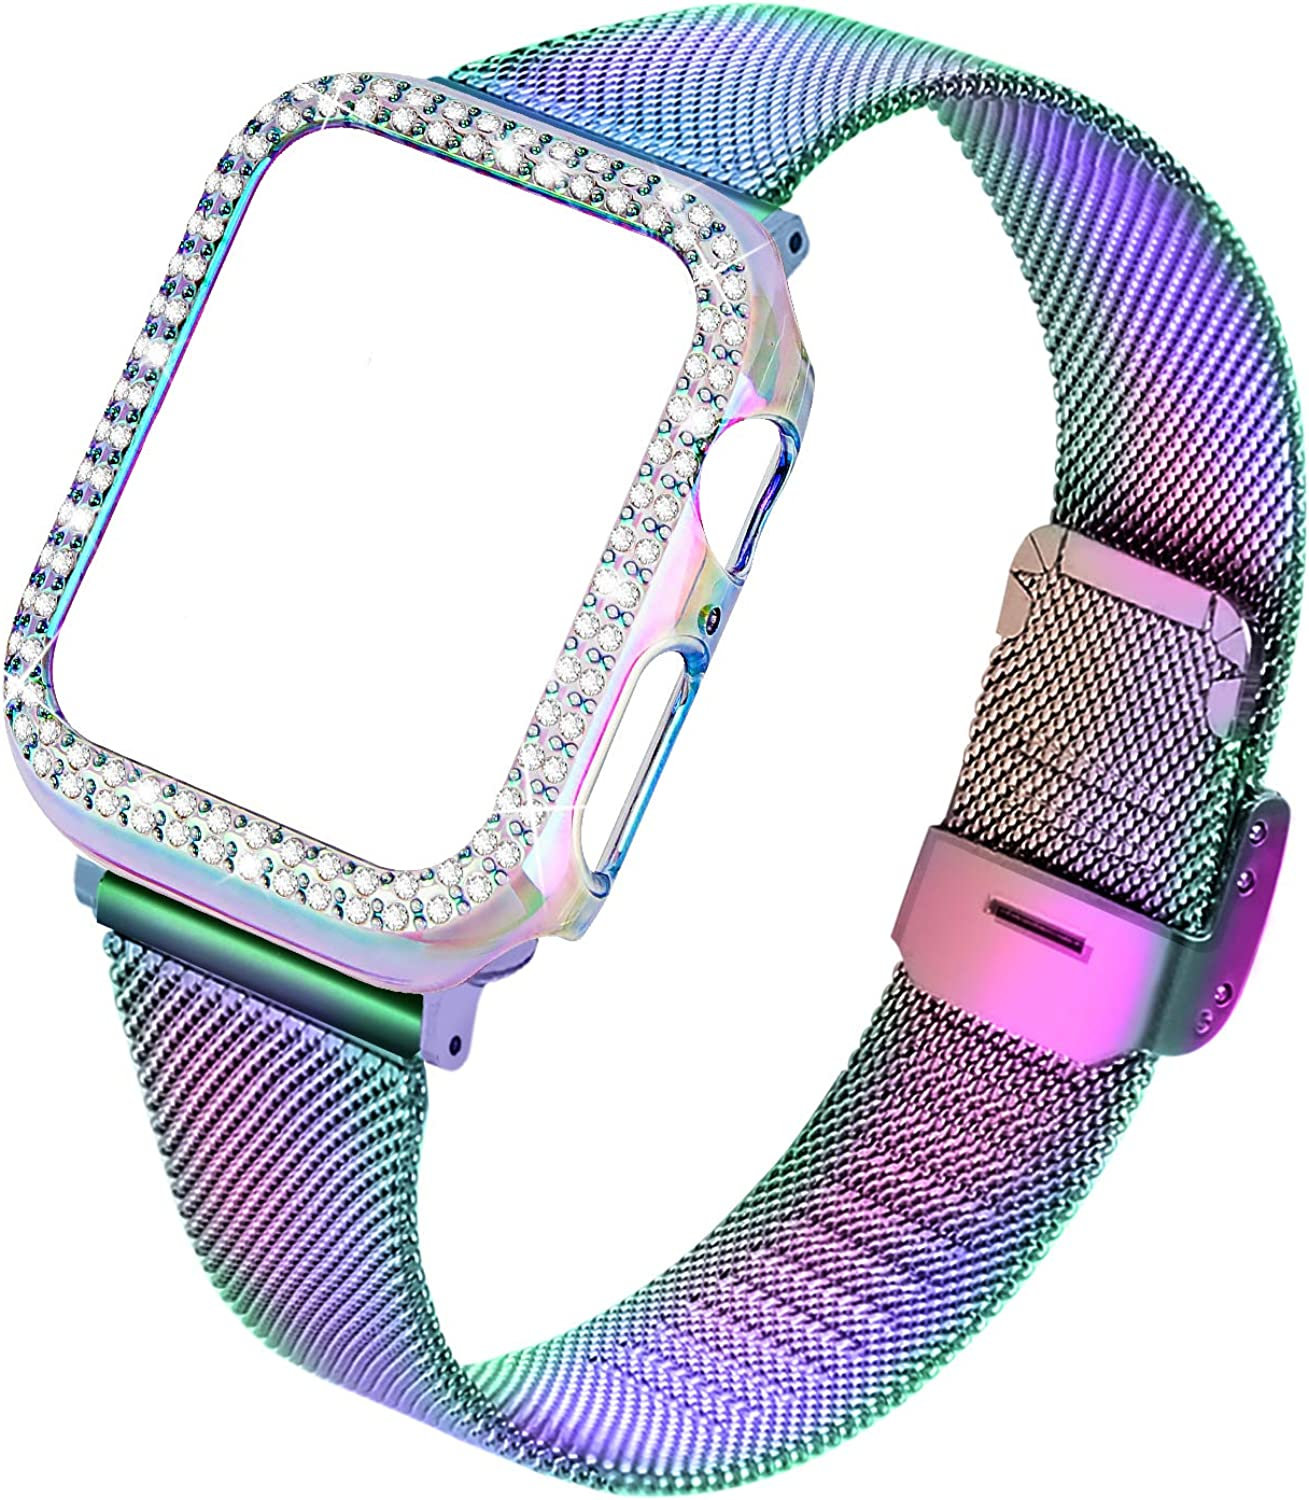 Joyozy Compatible For Apple Watch Bands 38mm 40mm 42mm 44mm,Women Bling Crystal Case Stainless Steel Mesh bands For Iwatch Series 6/SE/5/4/3/2/1(No Tool Needed)